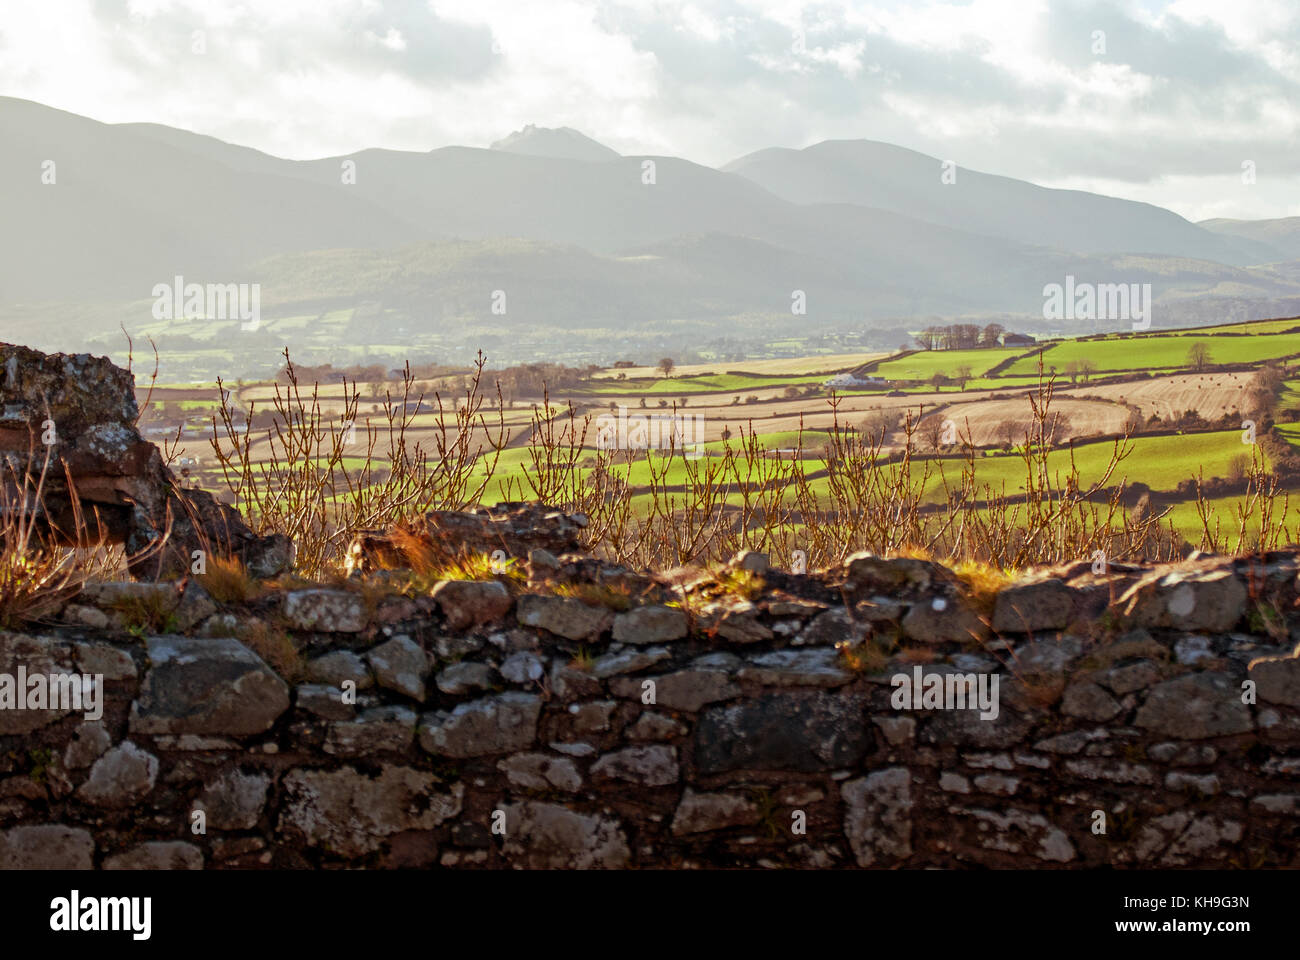 DUNDRUM - NORTHERN IRELAND - NOVEMBER 11, 2017 - A view from Dundrum Castle ruins. Situated above the town of Dundrum - Stock Image